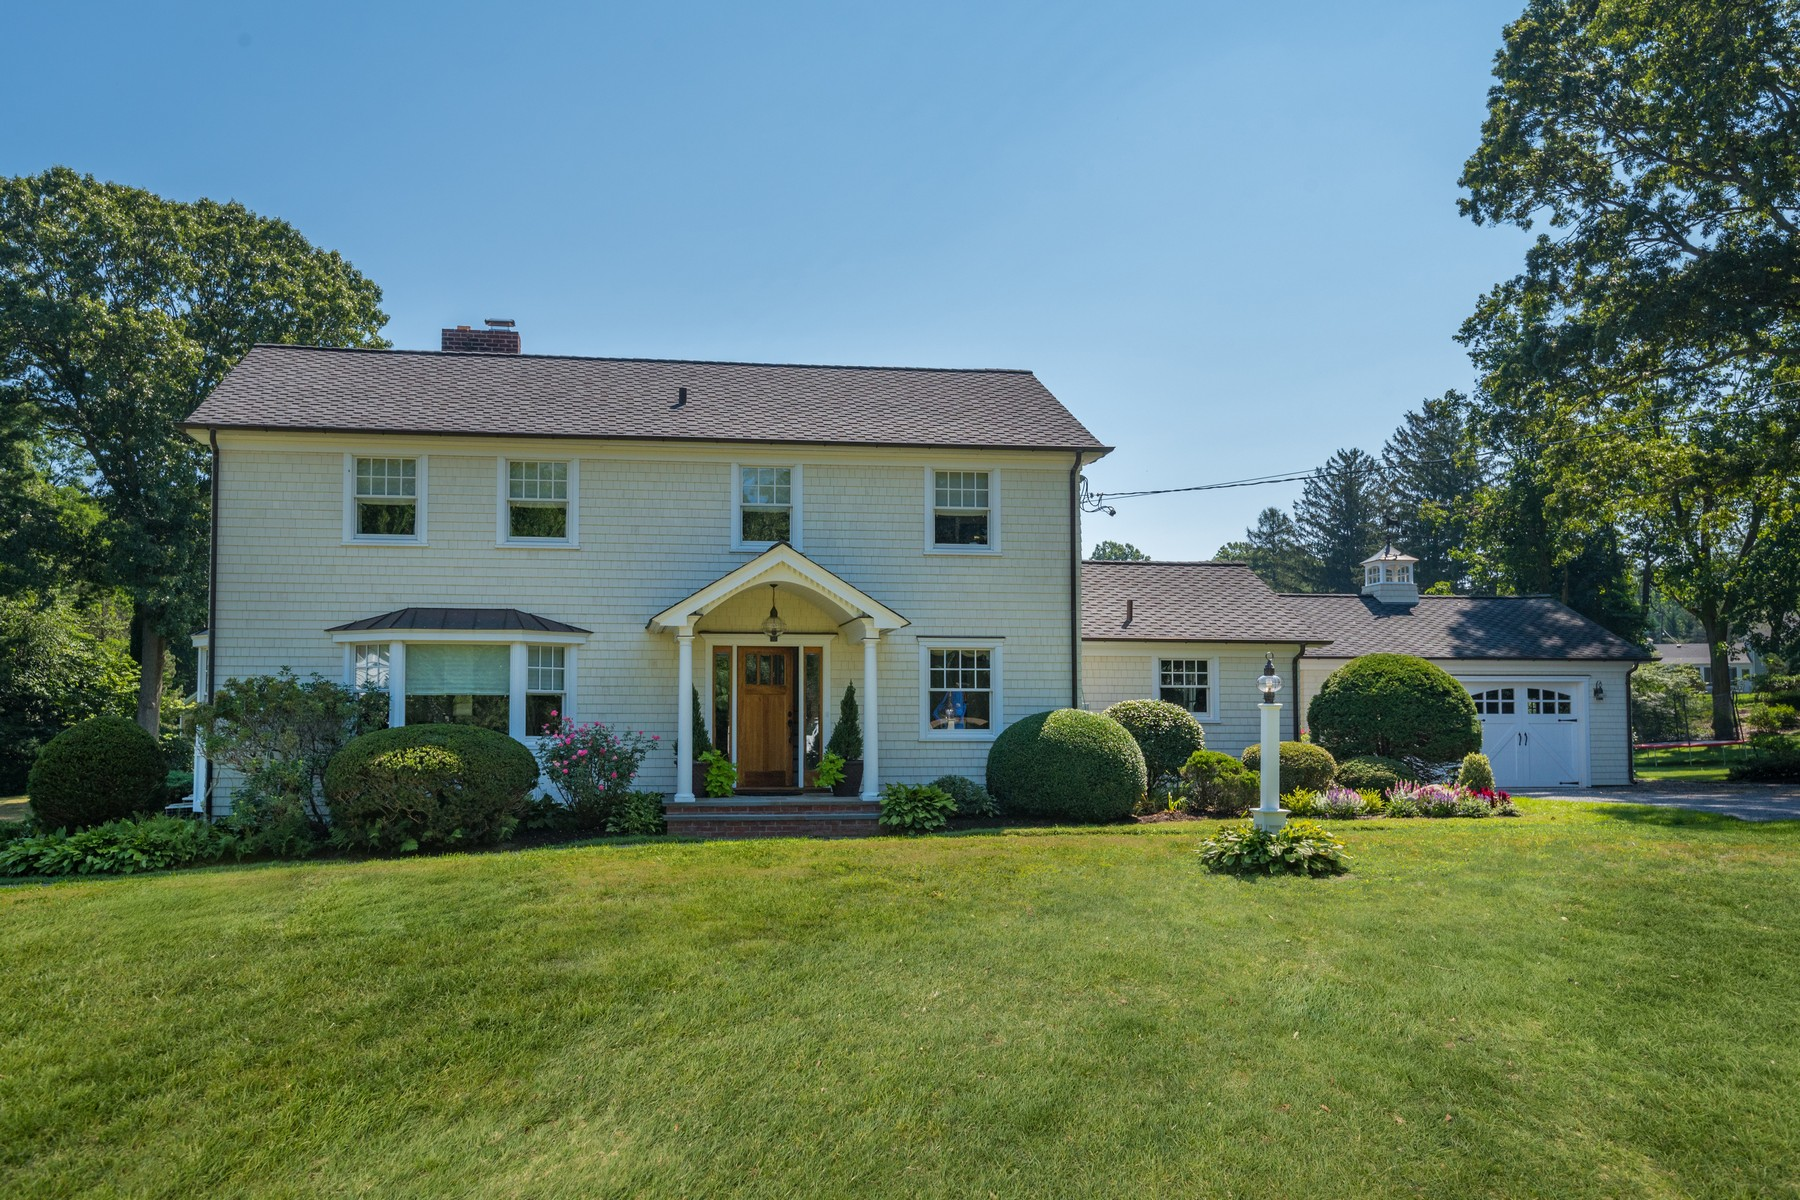 Maison unifamiliale pour l Vente à 10 Howard Dr , Huntington, NY 11743 10 Howard Dr Huntington, New York 11743 États-Unis